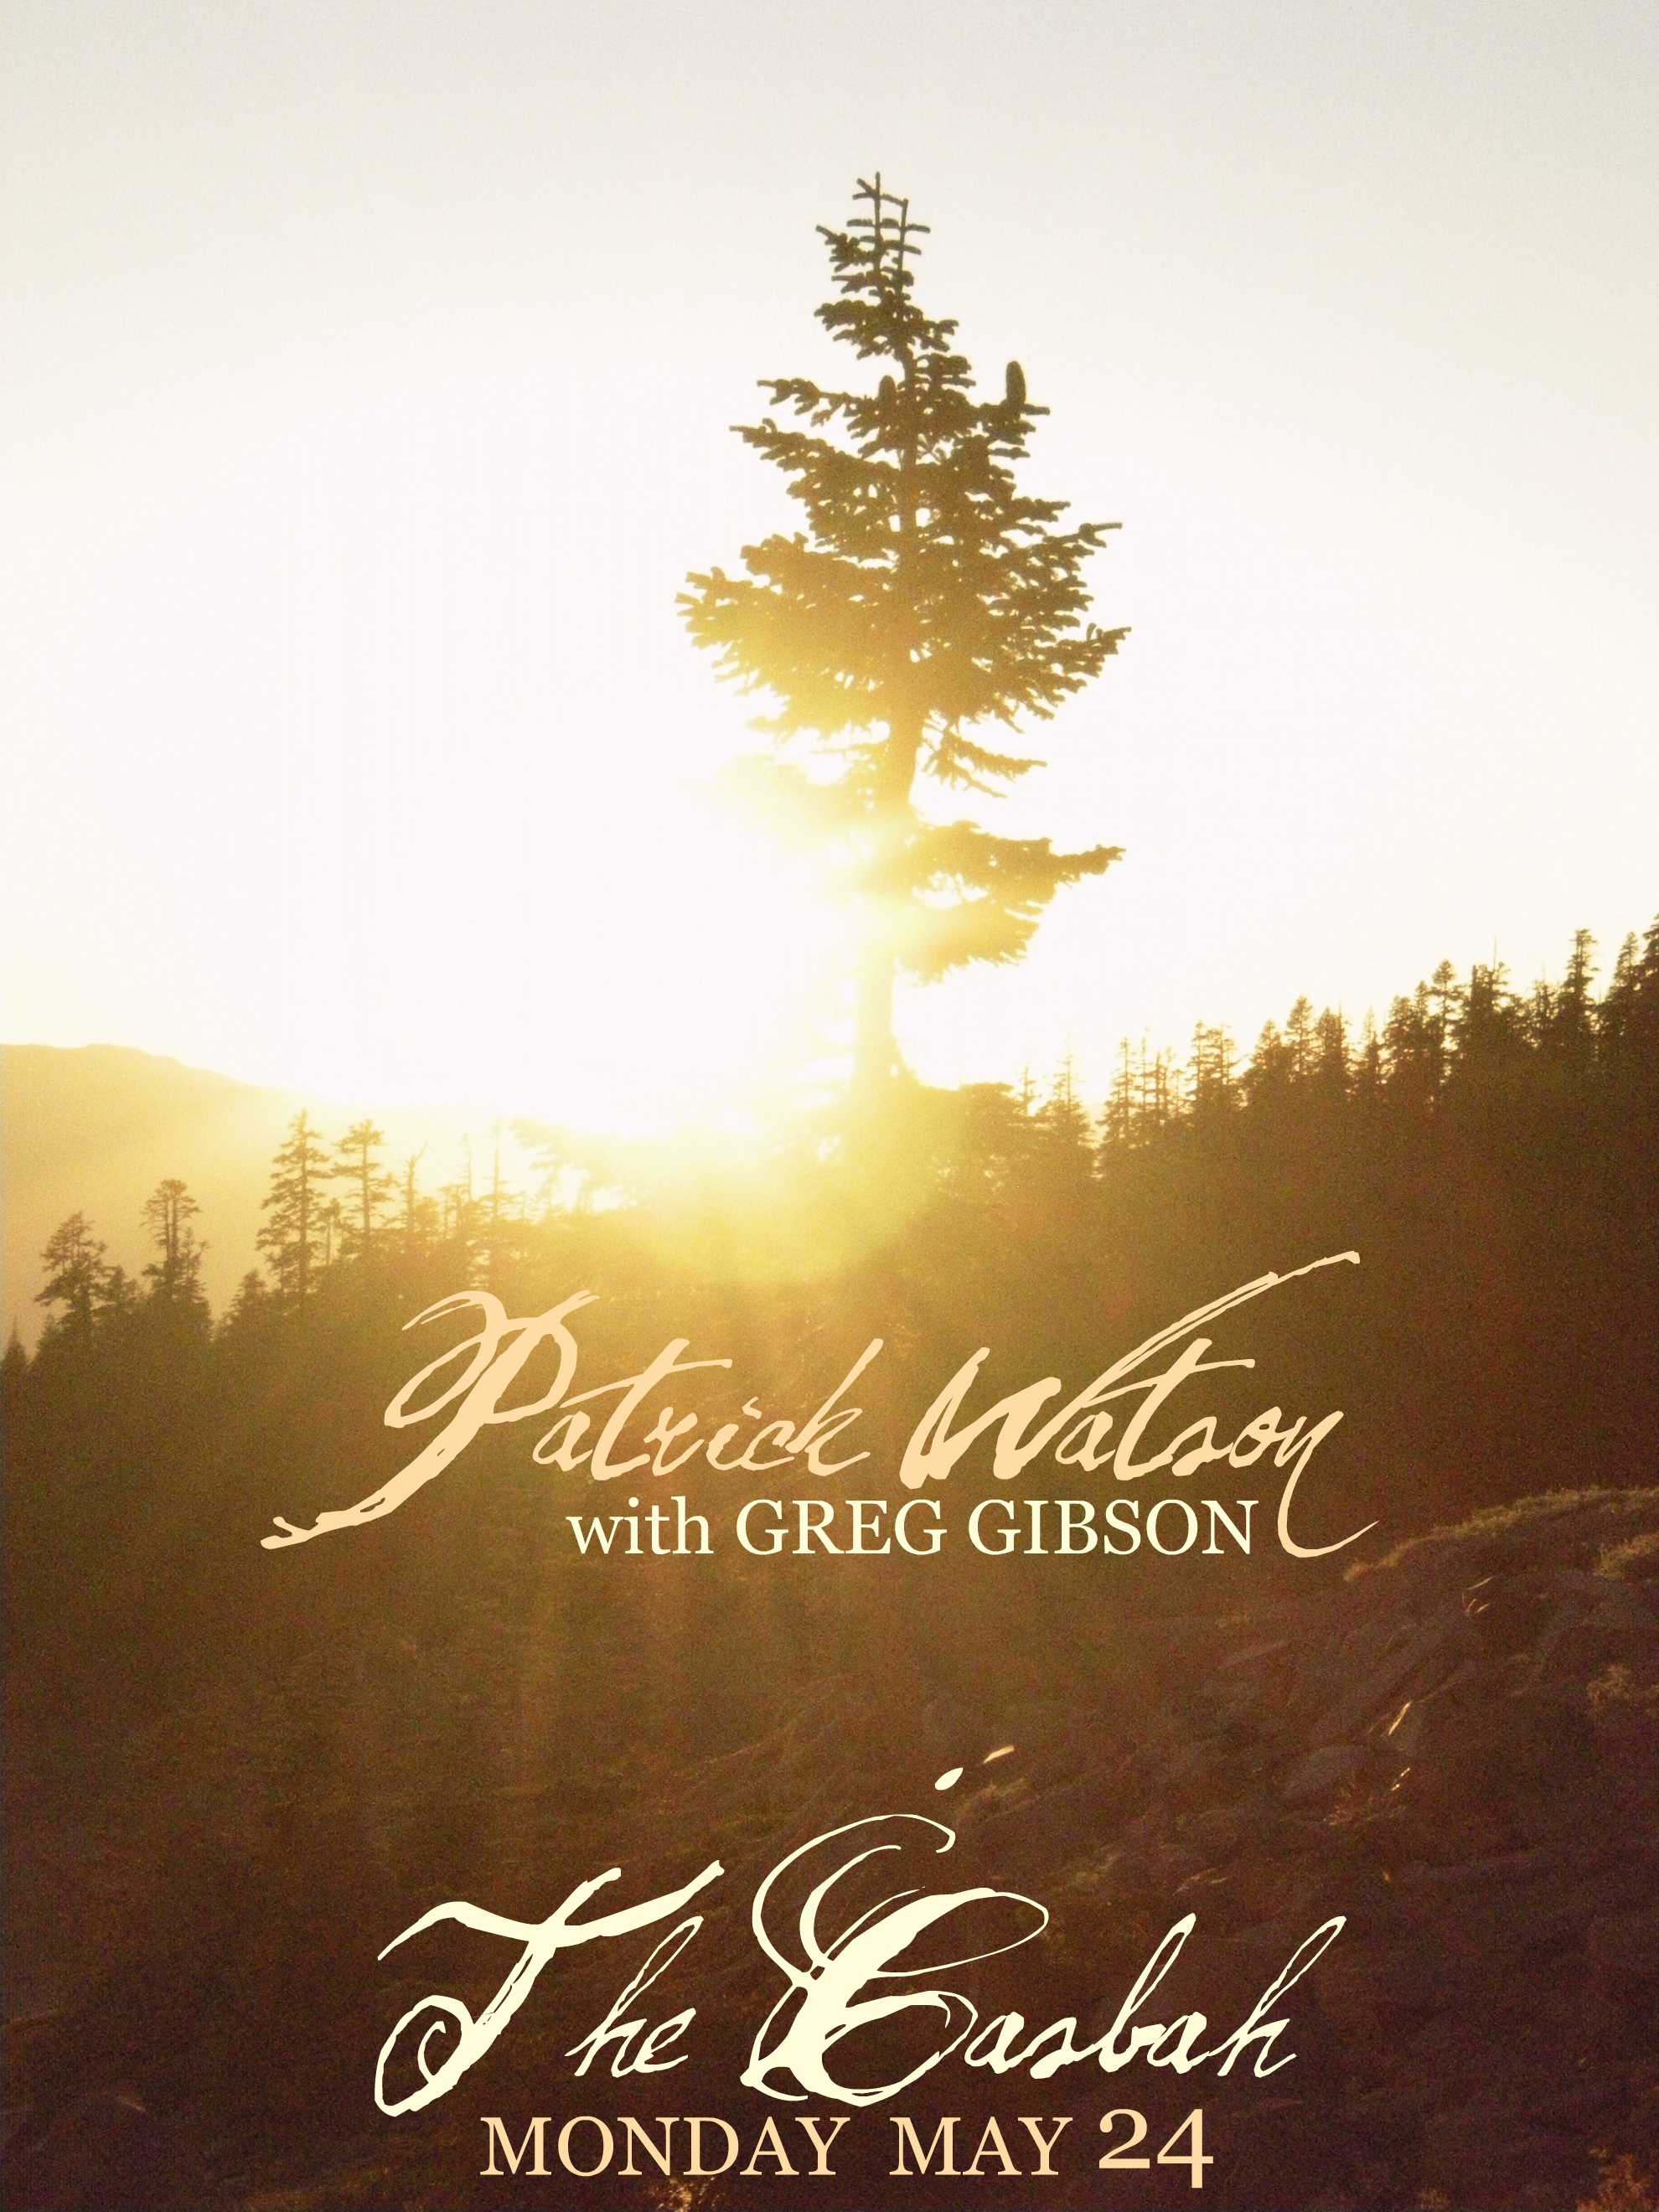 Greg Gibson Posters